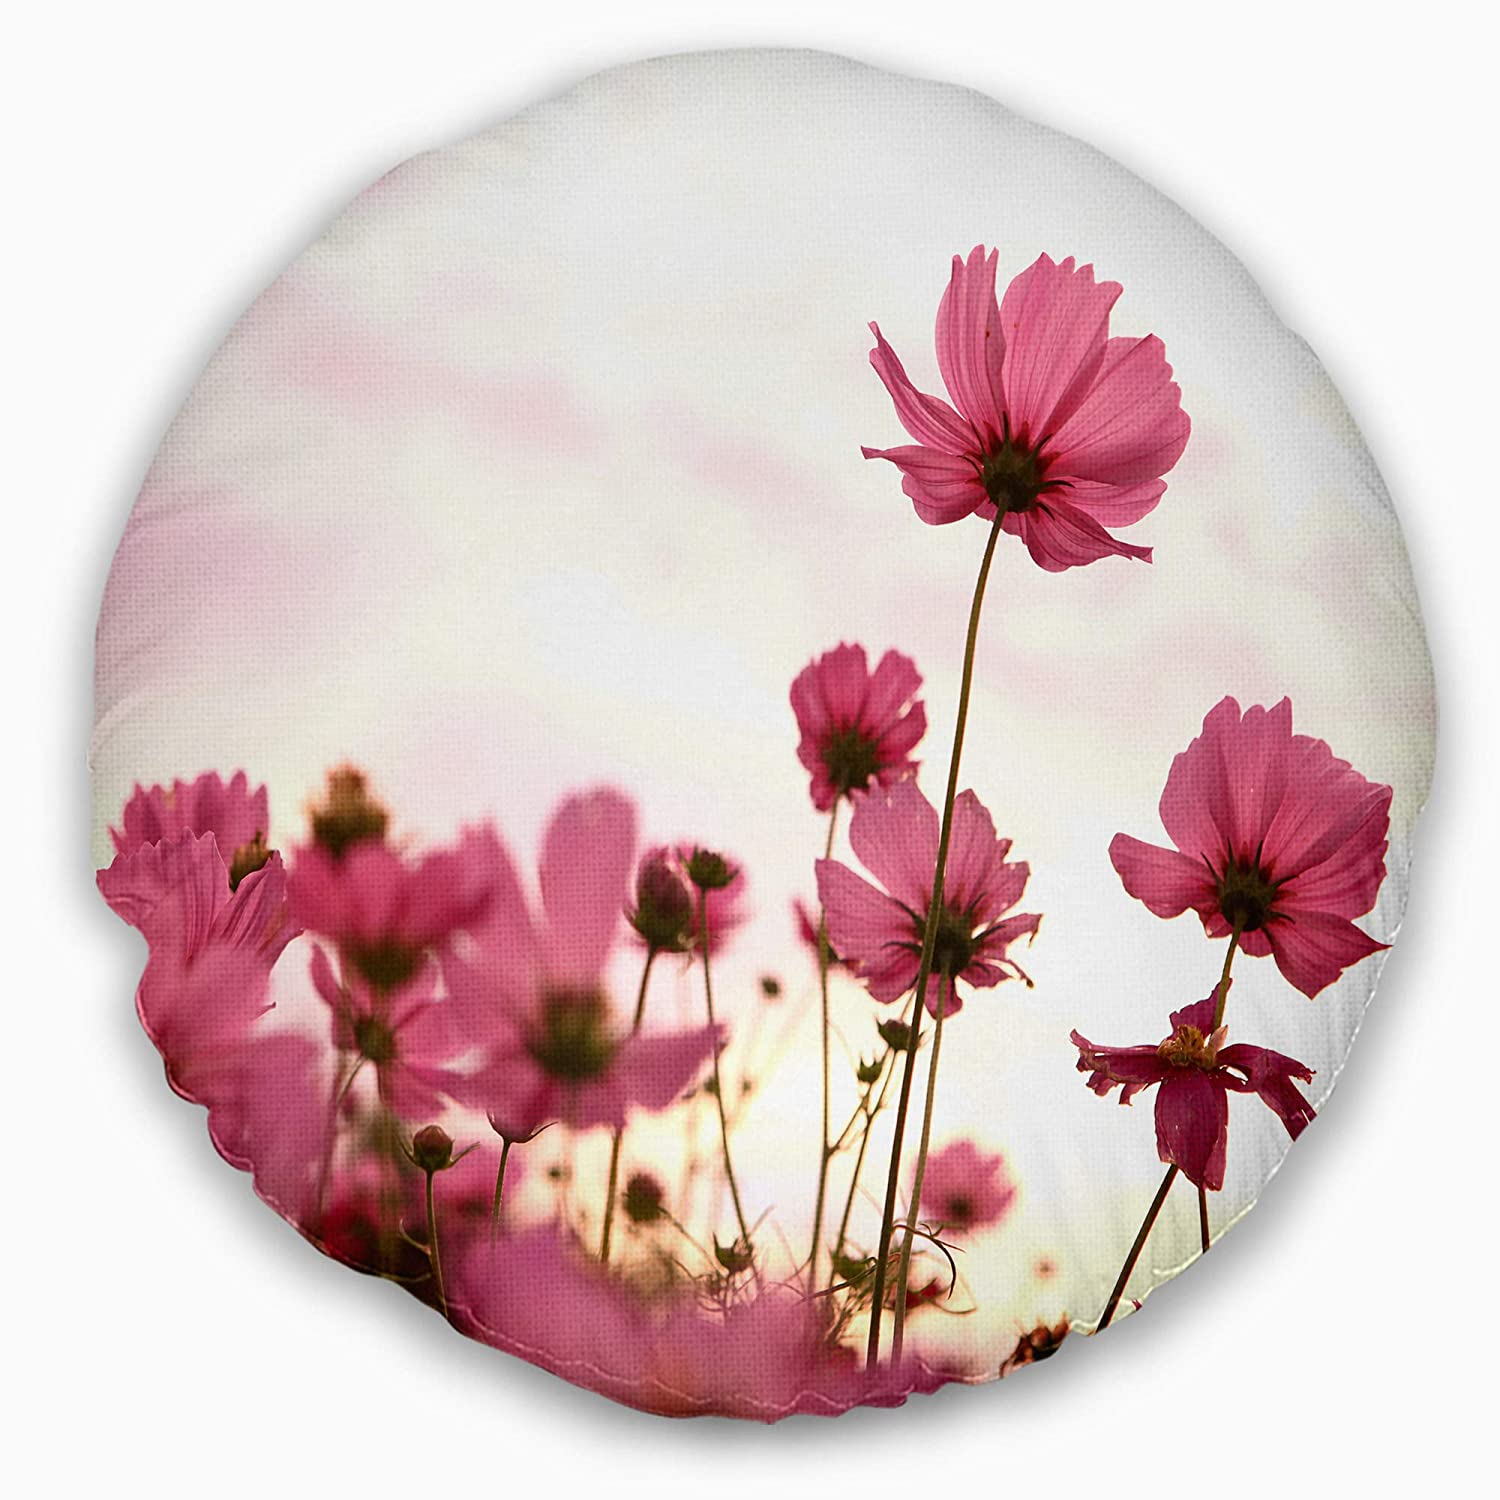 Throw Pillow Designart CU13021-16-16-C Cosmos Flowers Meadow at Sunset Floral Round Cushion Cover for Living Room Insert Printed On Both Side Sofa 16